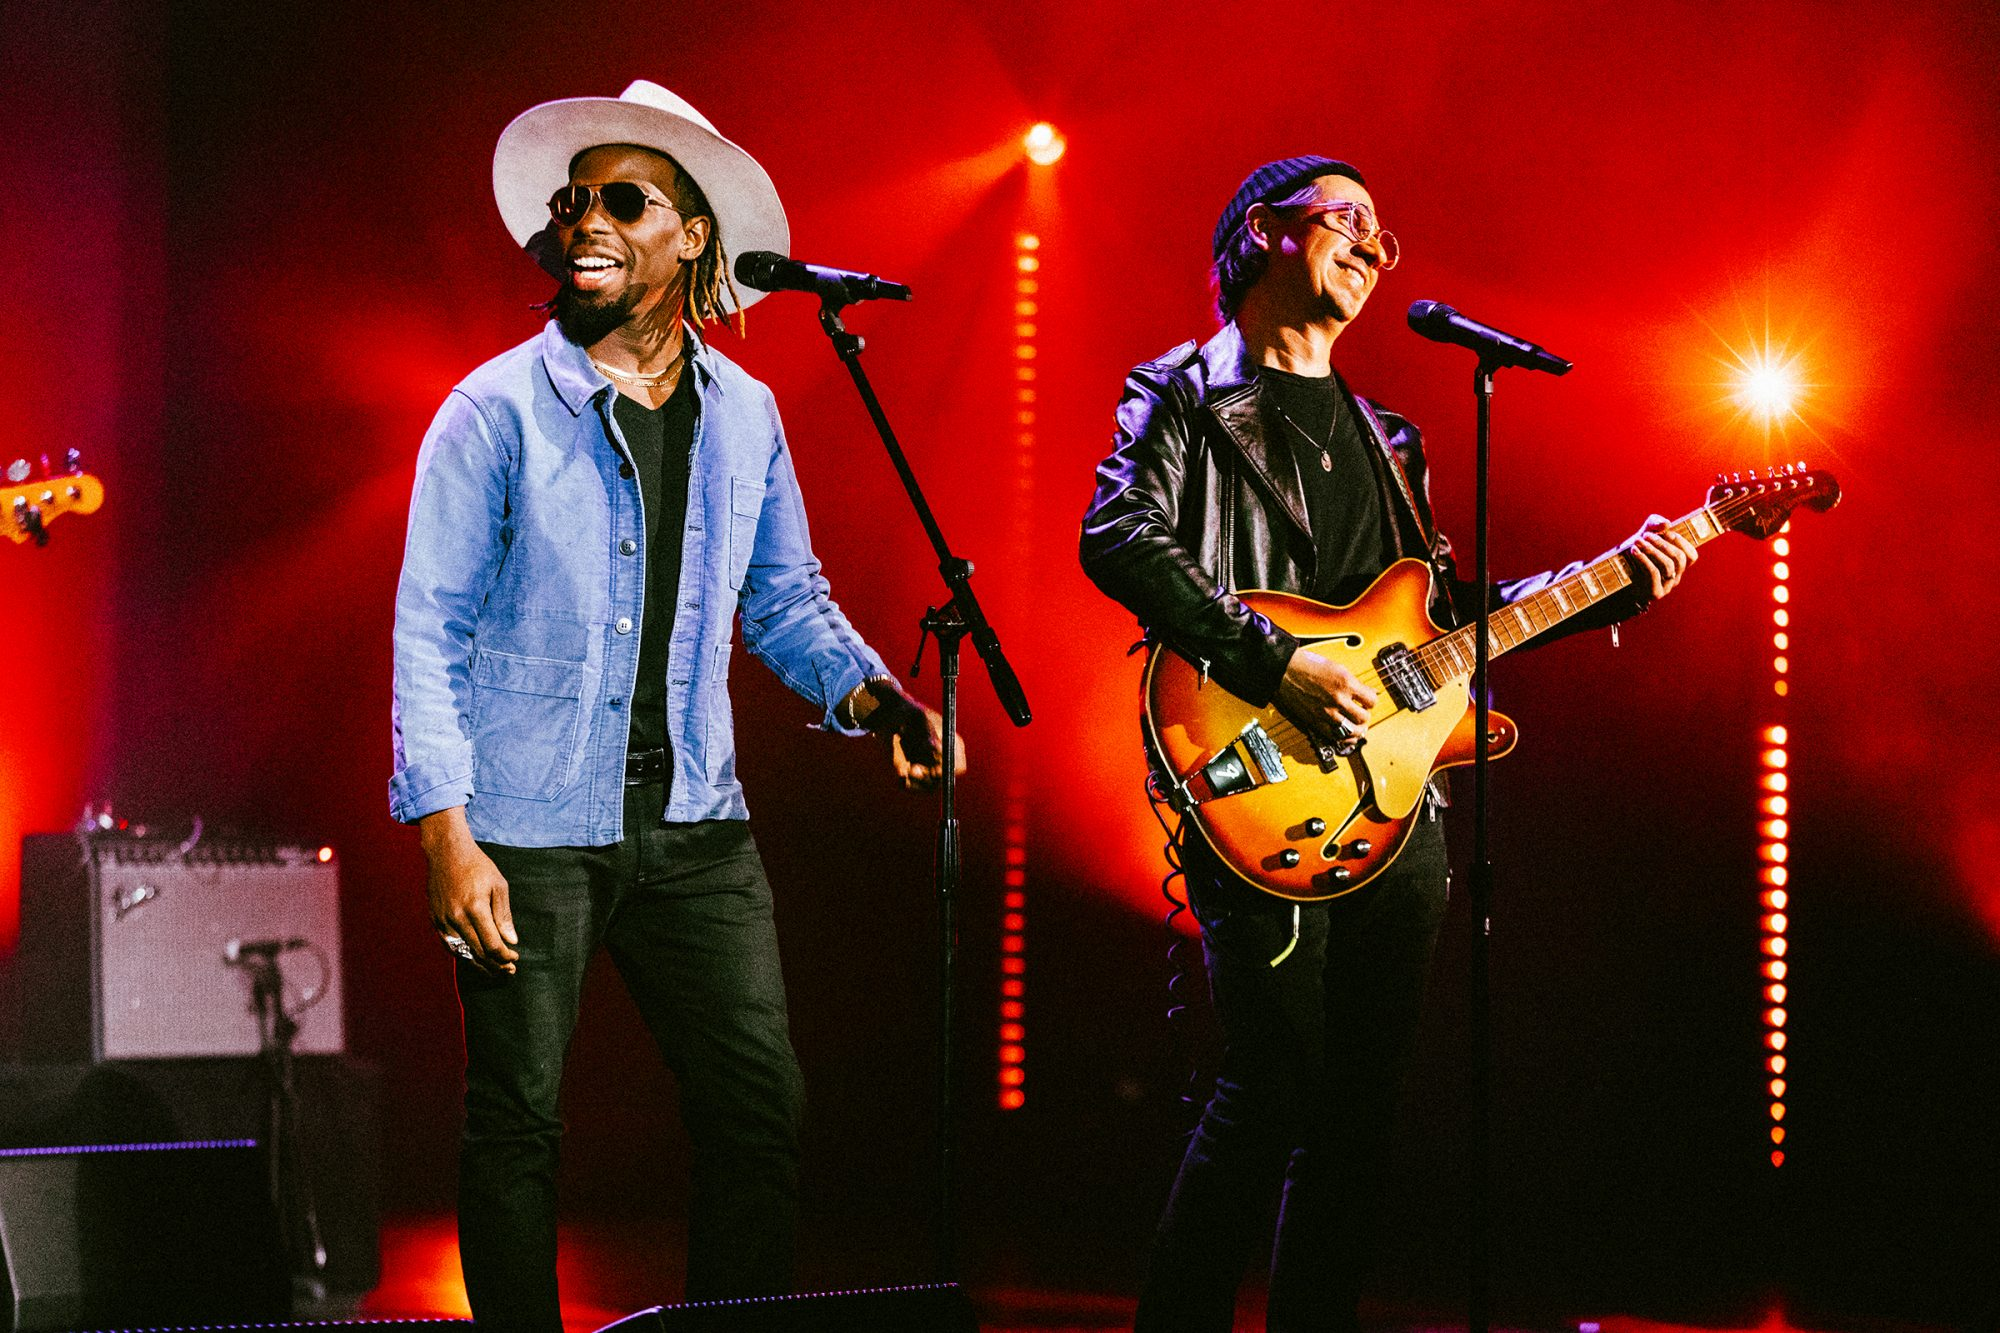 Black Pumas performed virtually for Verizon Up members for a pre-GRAMMYs 5G concert at The Wiltern in Los Angeles on Saturday, March 13, 2021